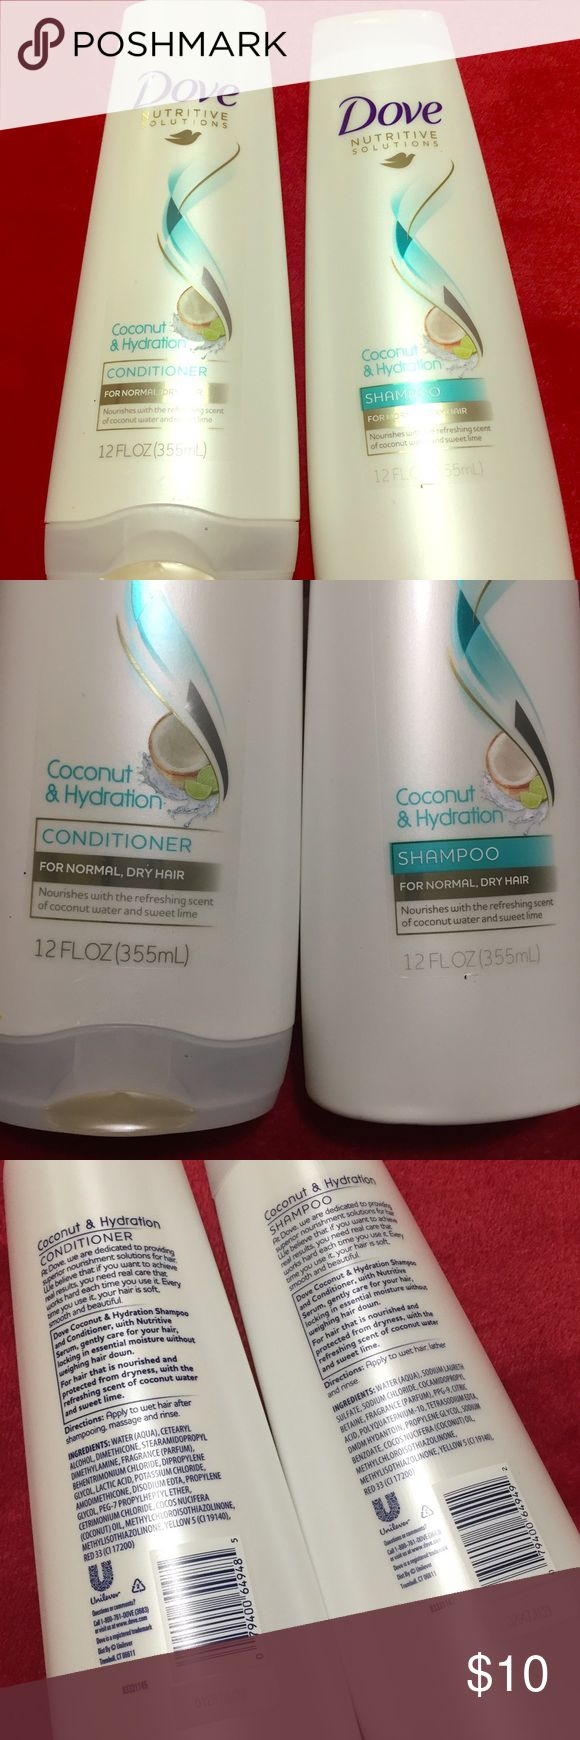 💕Dove Shampoo and Conditioner💕 Brand new bottles of dove shampoo and conditioner for normal / dry hair. Coconut and hydration. Dove Makeup